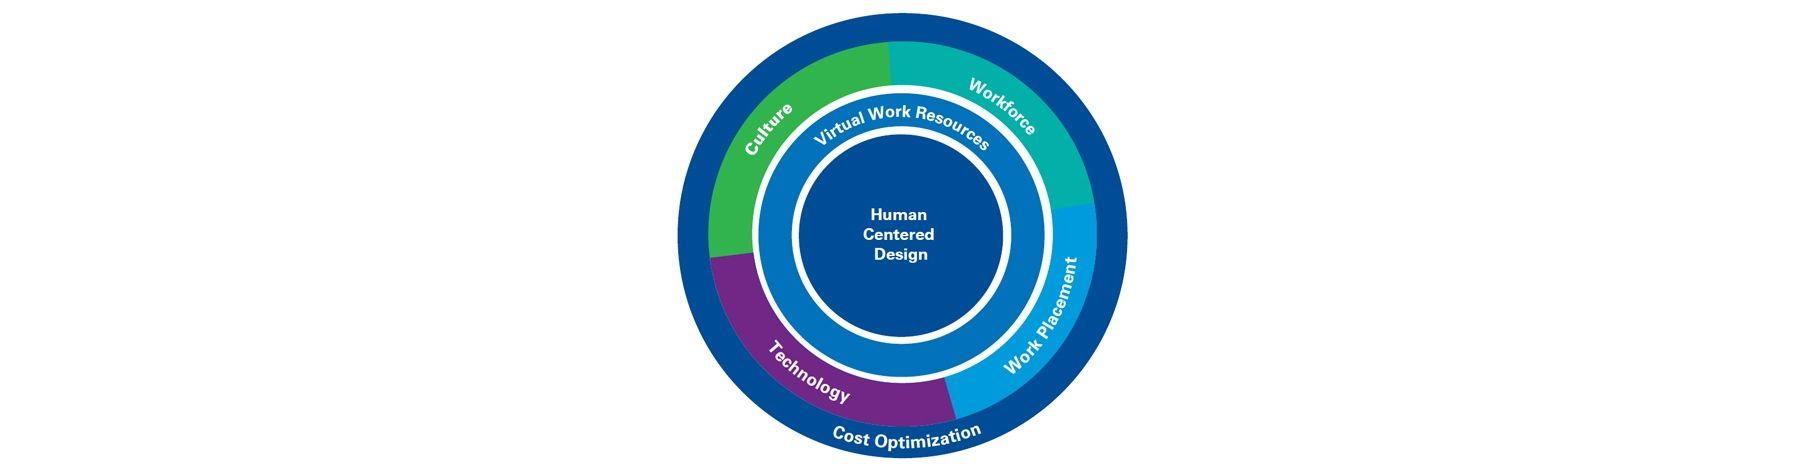 Our approach to reimagining work - Tax, Workforce, Work Placement, Technology, Cost Optimisation, Virtual Work Resources, Human Centered Design